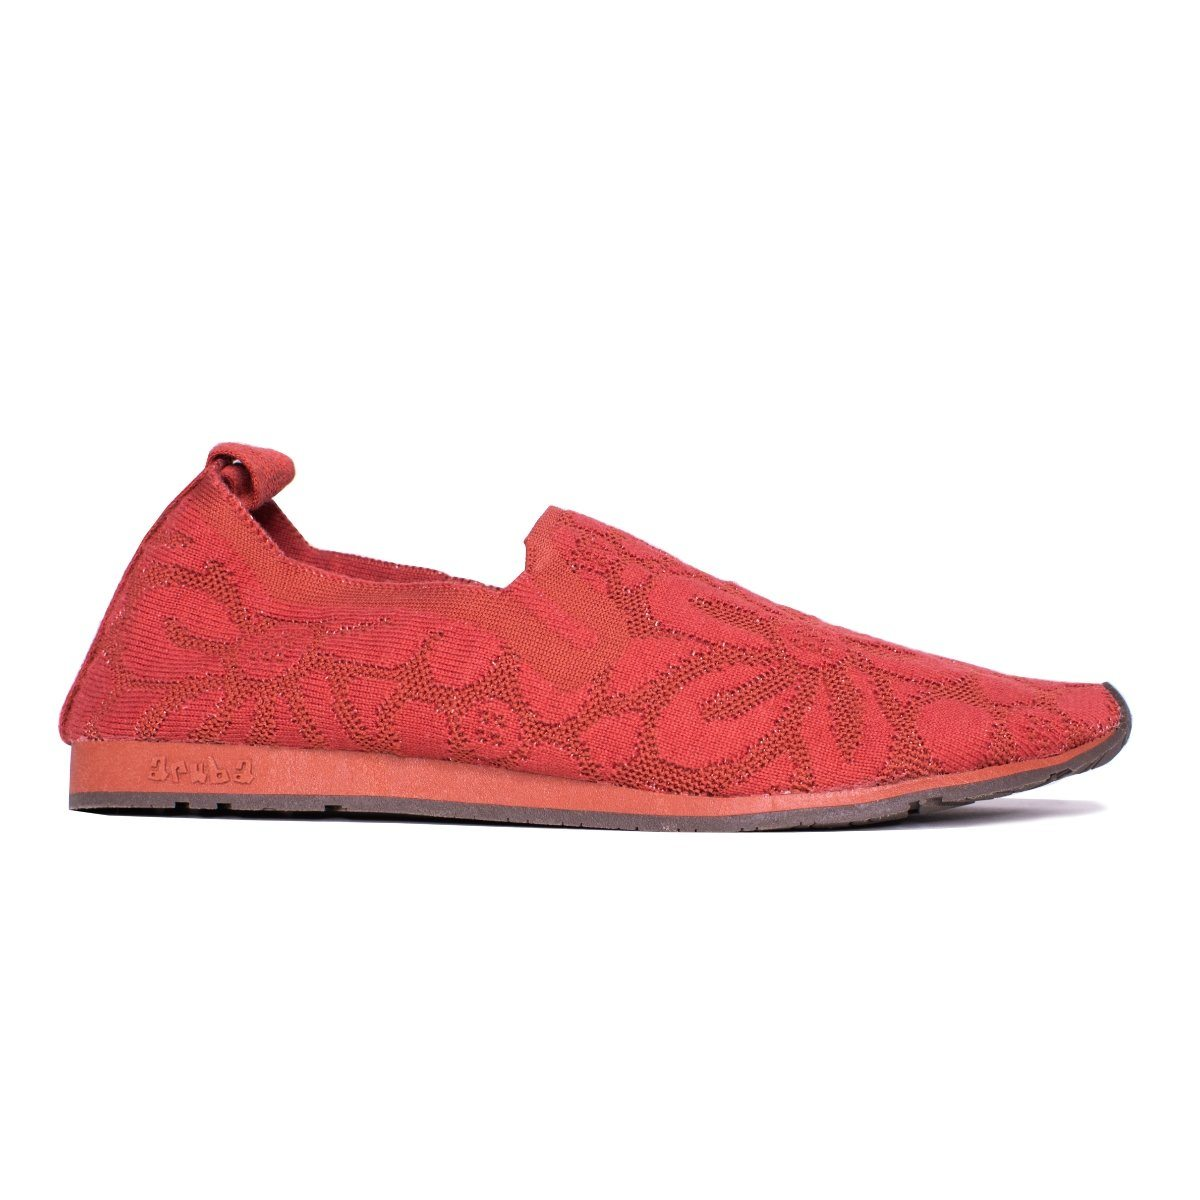 Side close view of red walking shoe